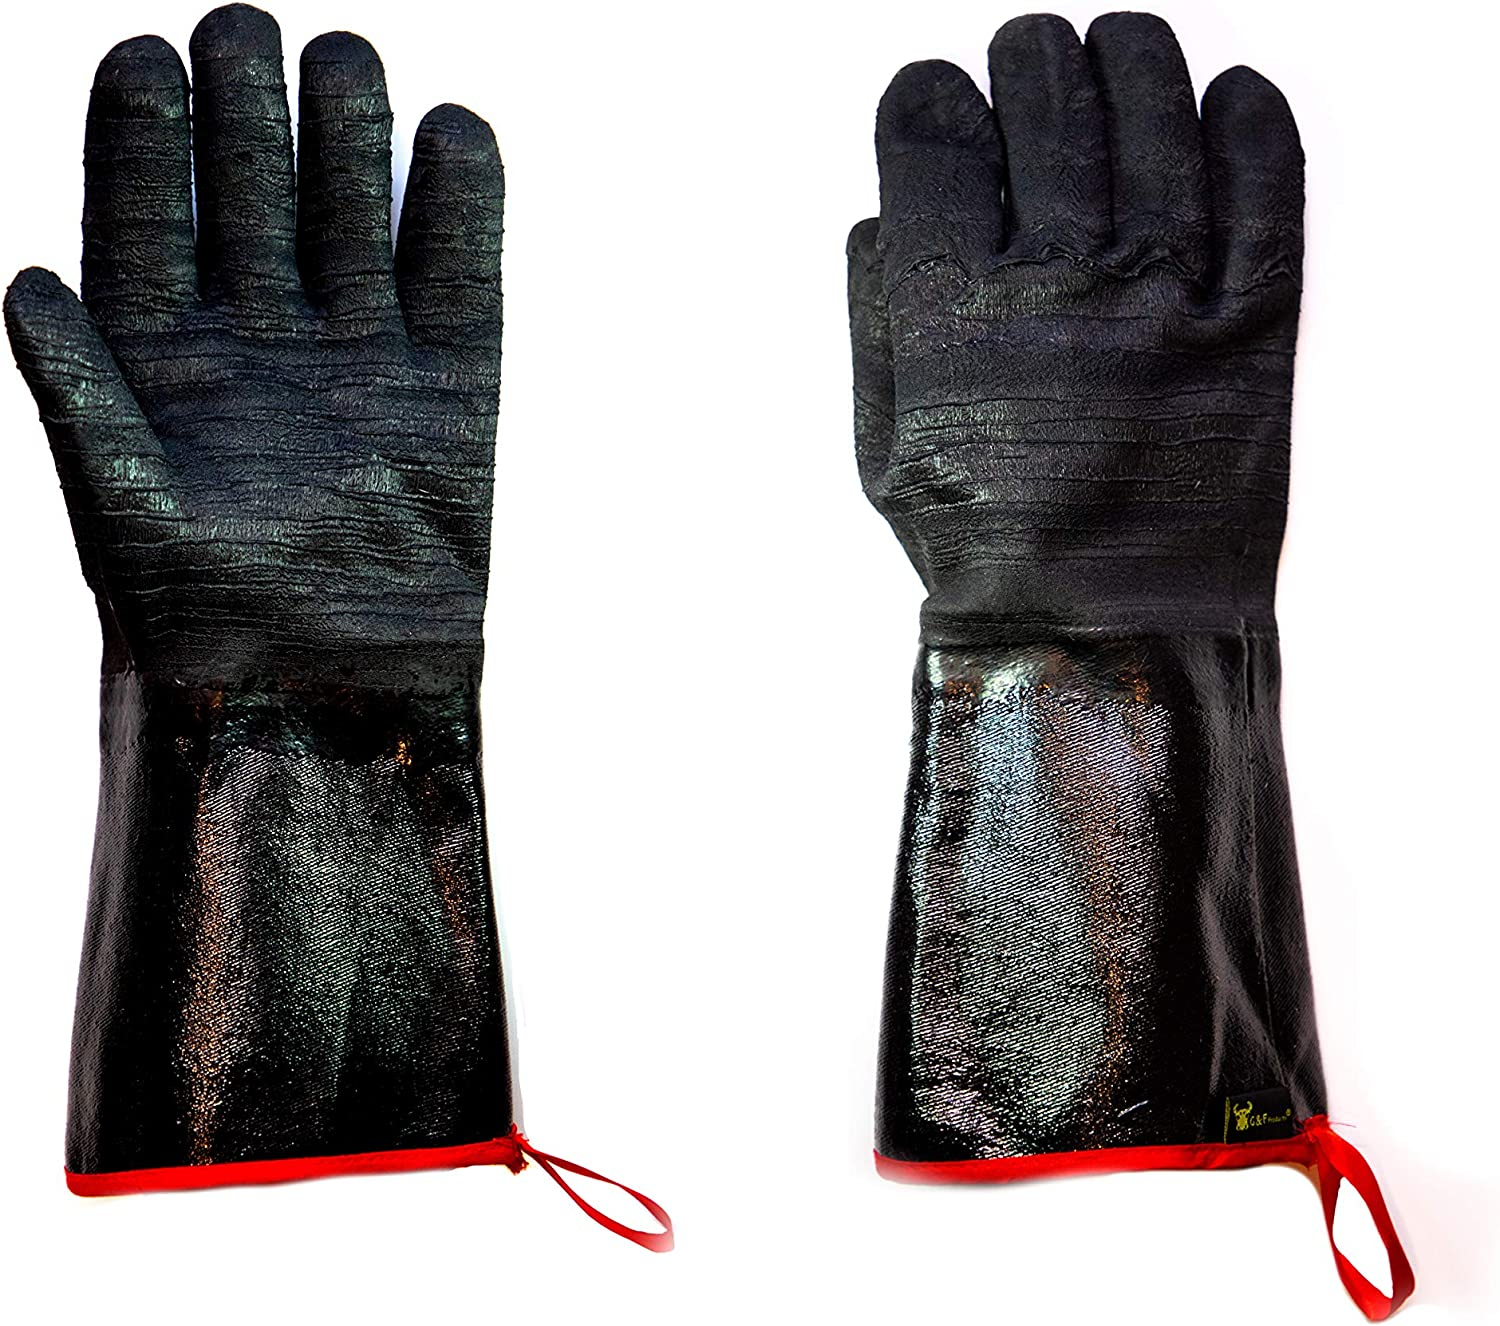 G & F Products 8119-13Inch Cooking Gloves FDA Food Safe No BPA Insulated Waterproof, Oil Proof Heat Resistant BBQ, Smoker, Grill, and Outdoor Neoprene Material Made in USA 13 Inch Long, Black